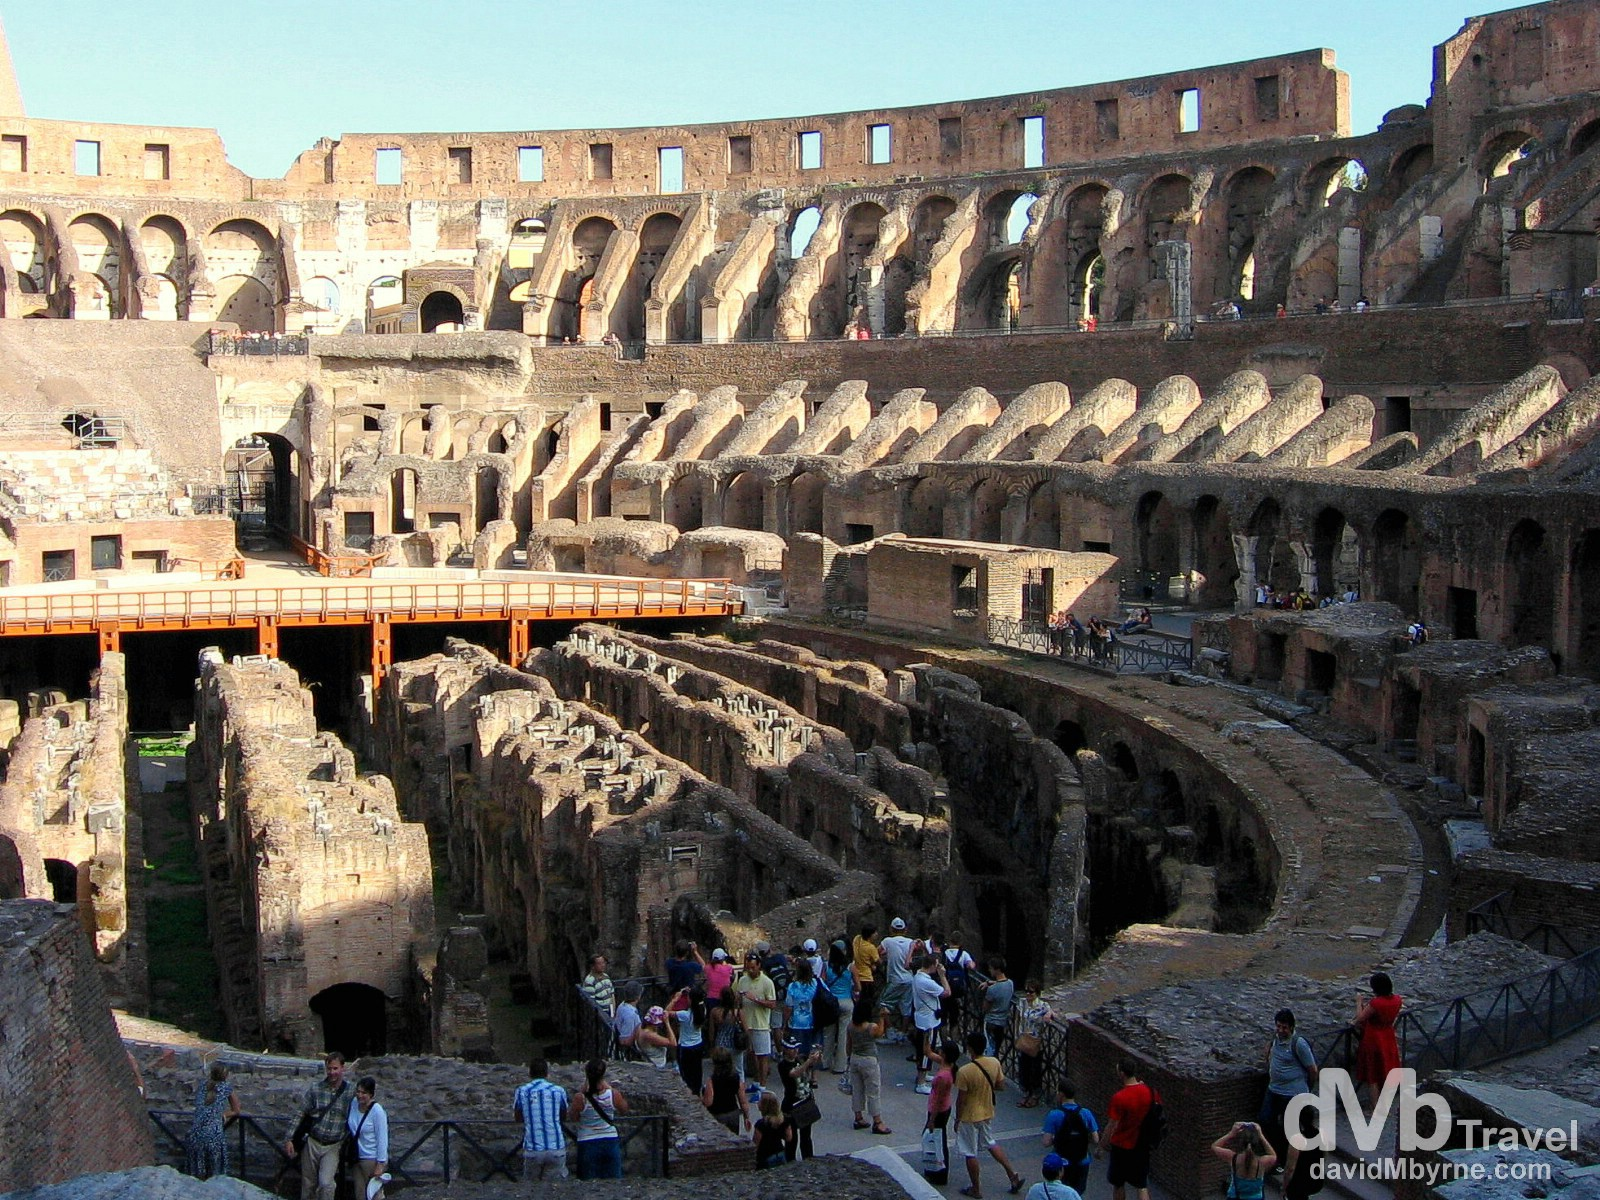 The inside of the Colosseum, Rome. September 2nd 2007.